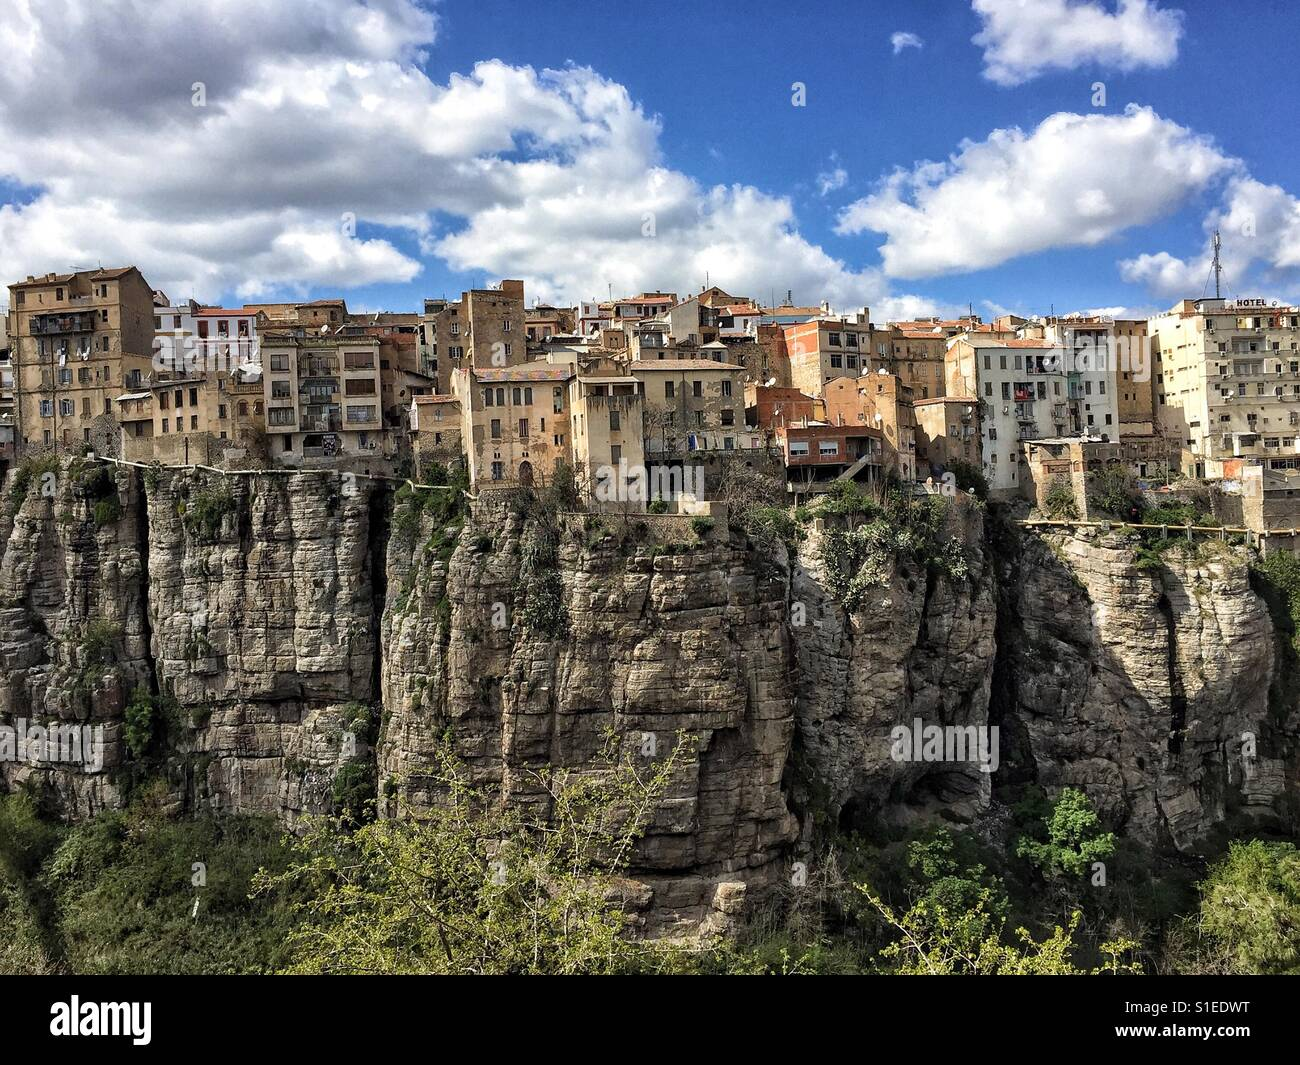 Houses on the cliff in Constantine city, Algeria, Africa - Stock Image